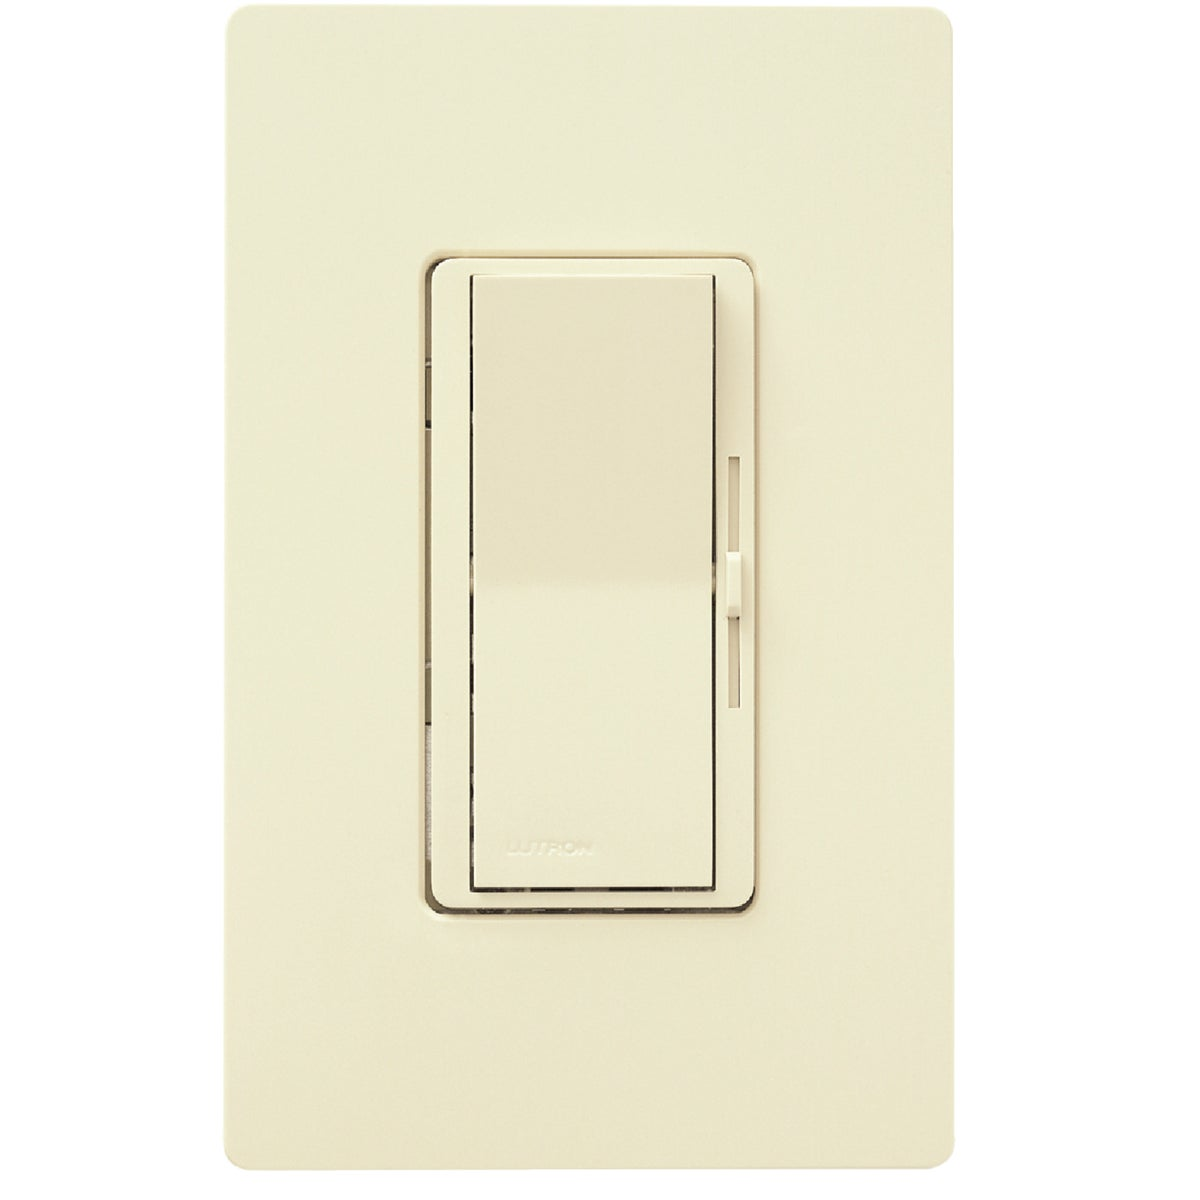 IV 3W SLIDE DIMMER - DVW-603PH-IV by Lutron Elect Co Inc